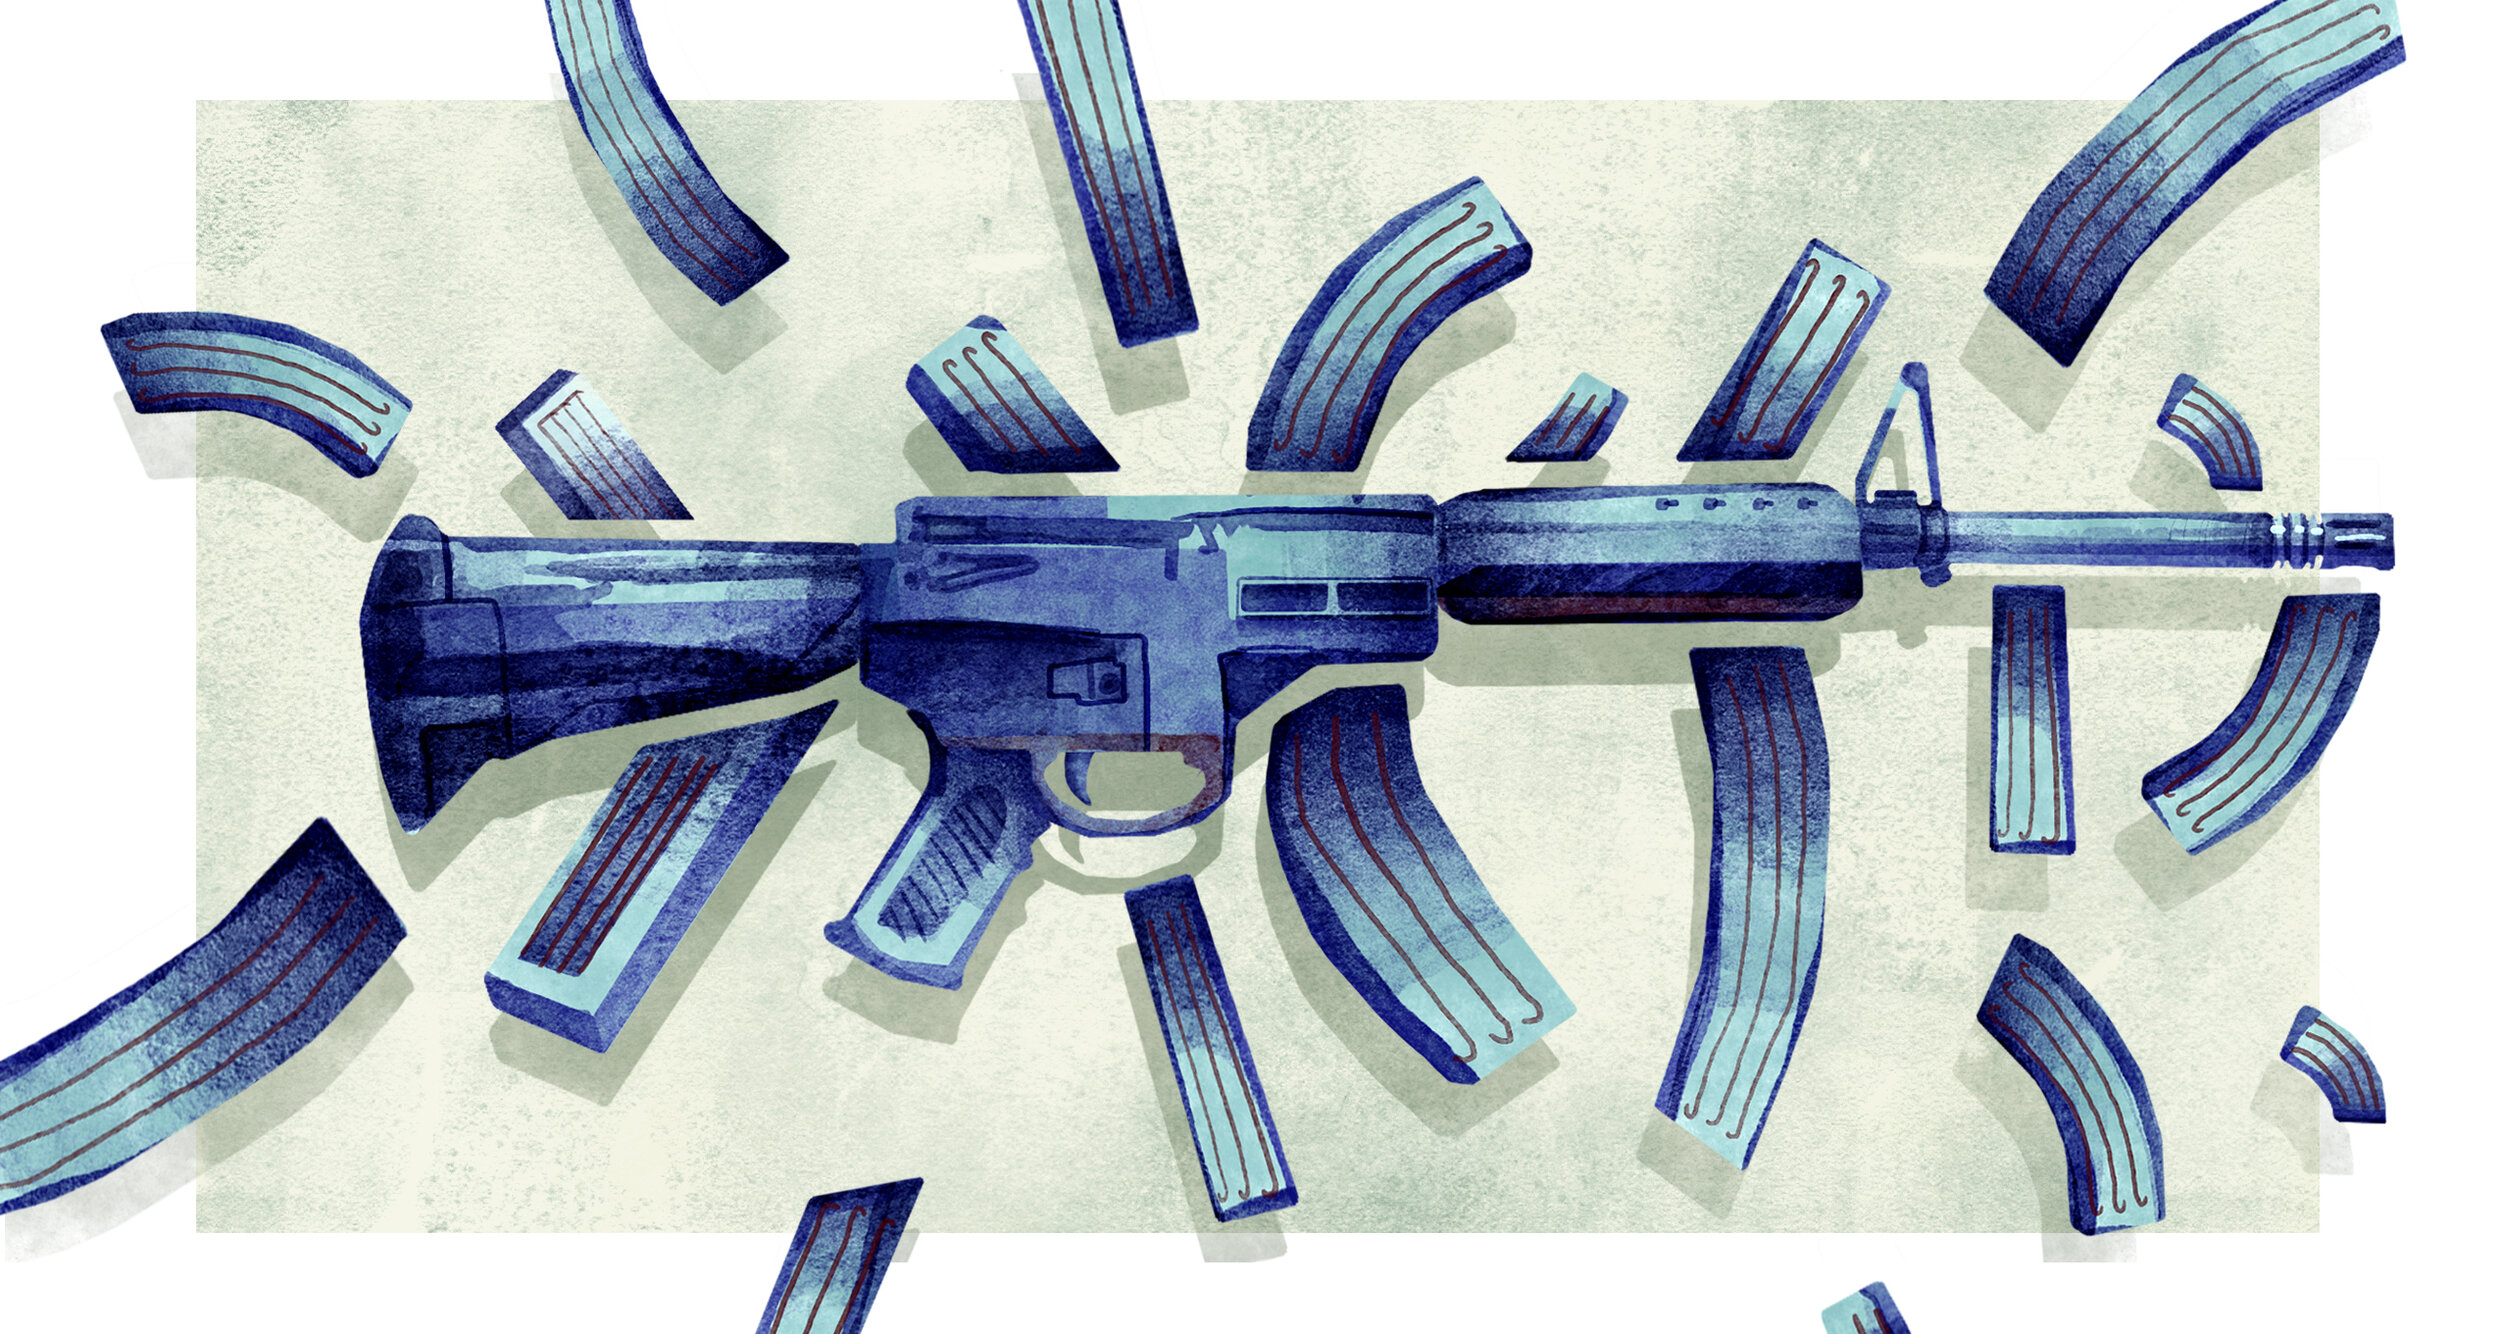 Editorial Illustration concerning the current epidemic of gun violence, and the debate surrounding gun control laws.